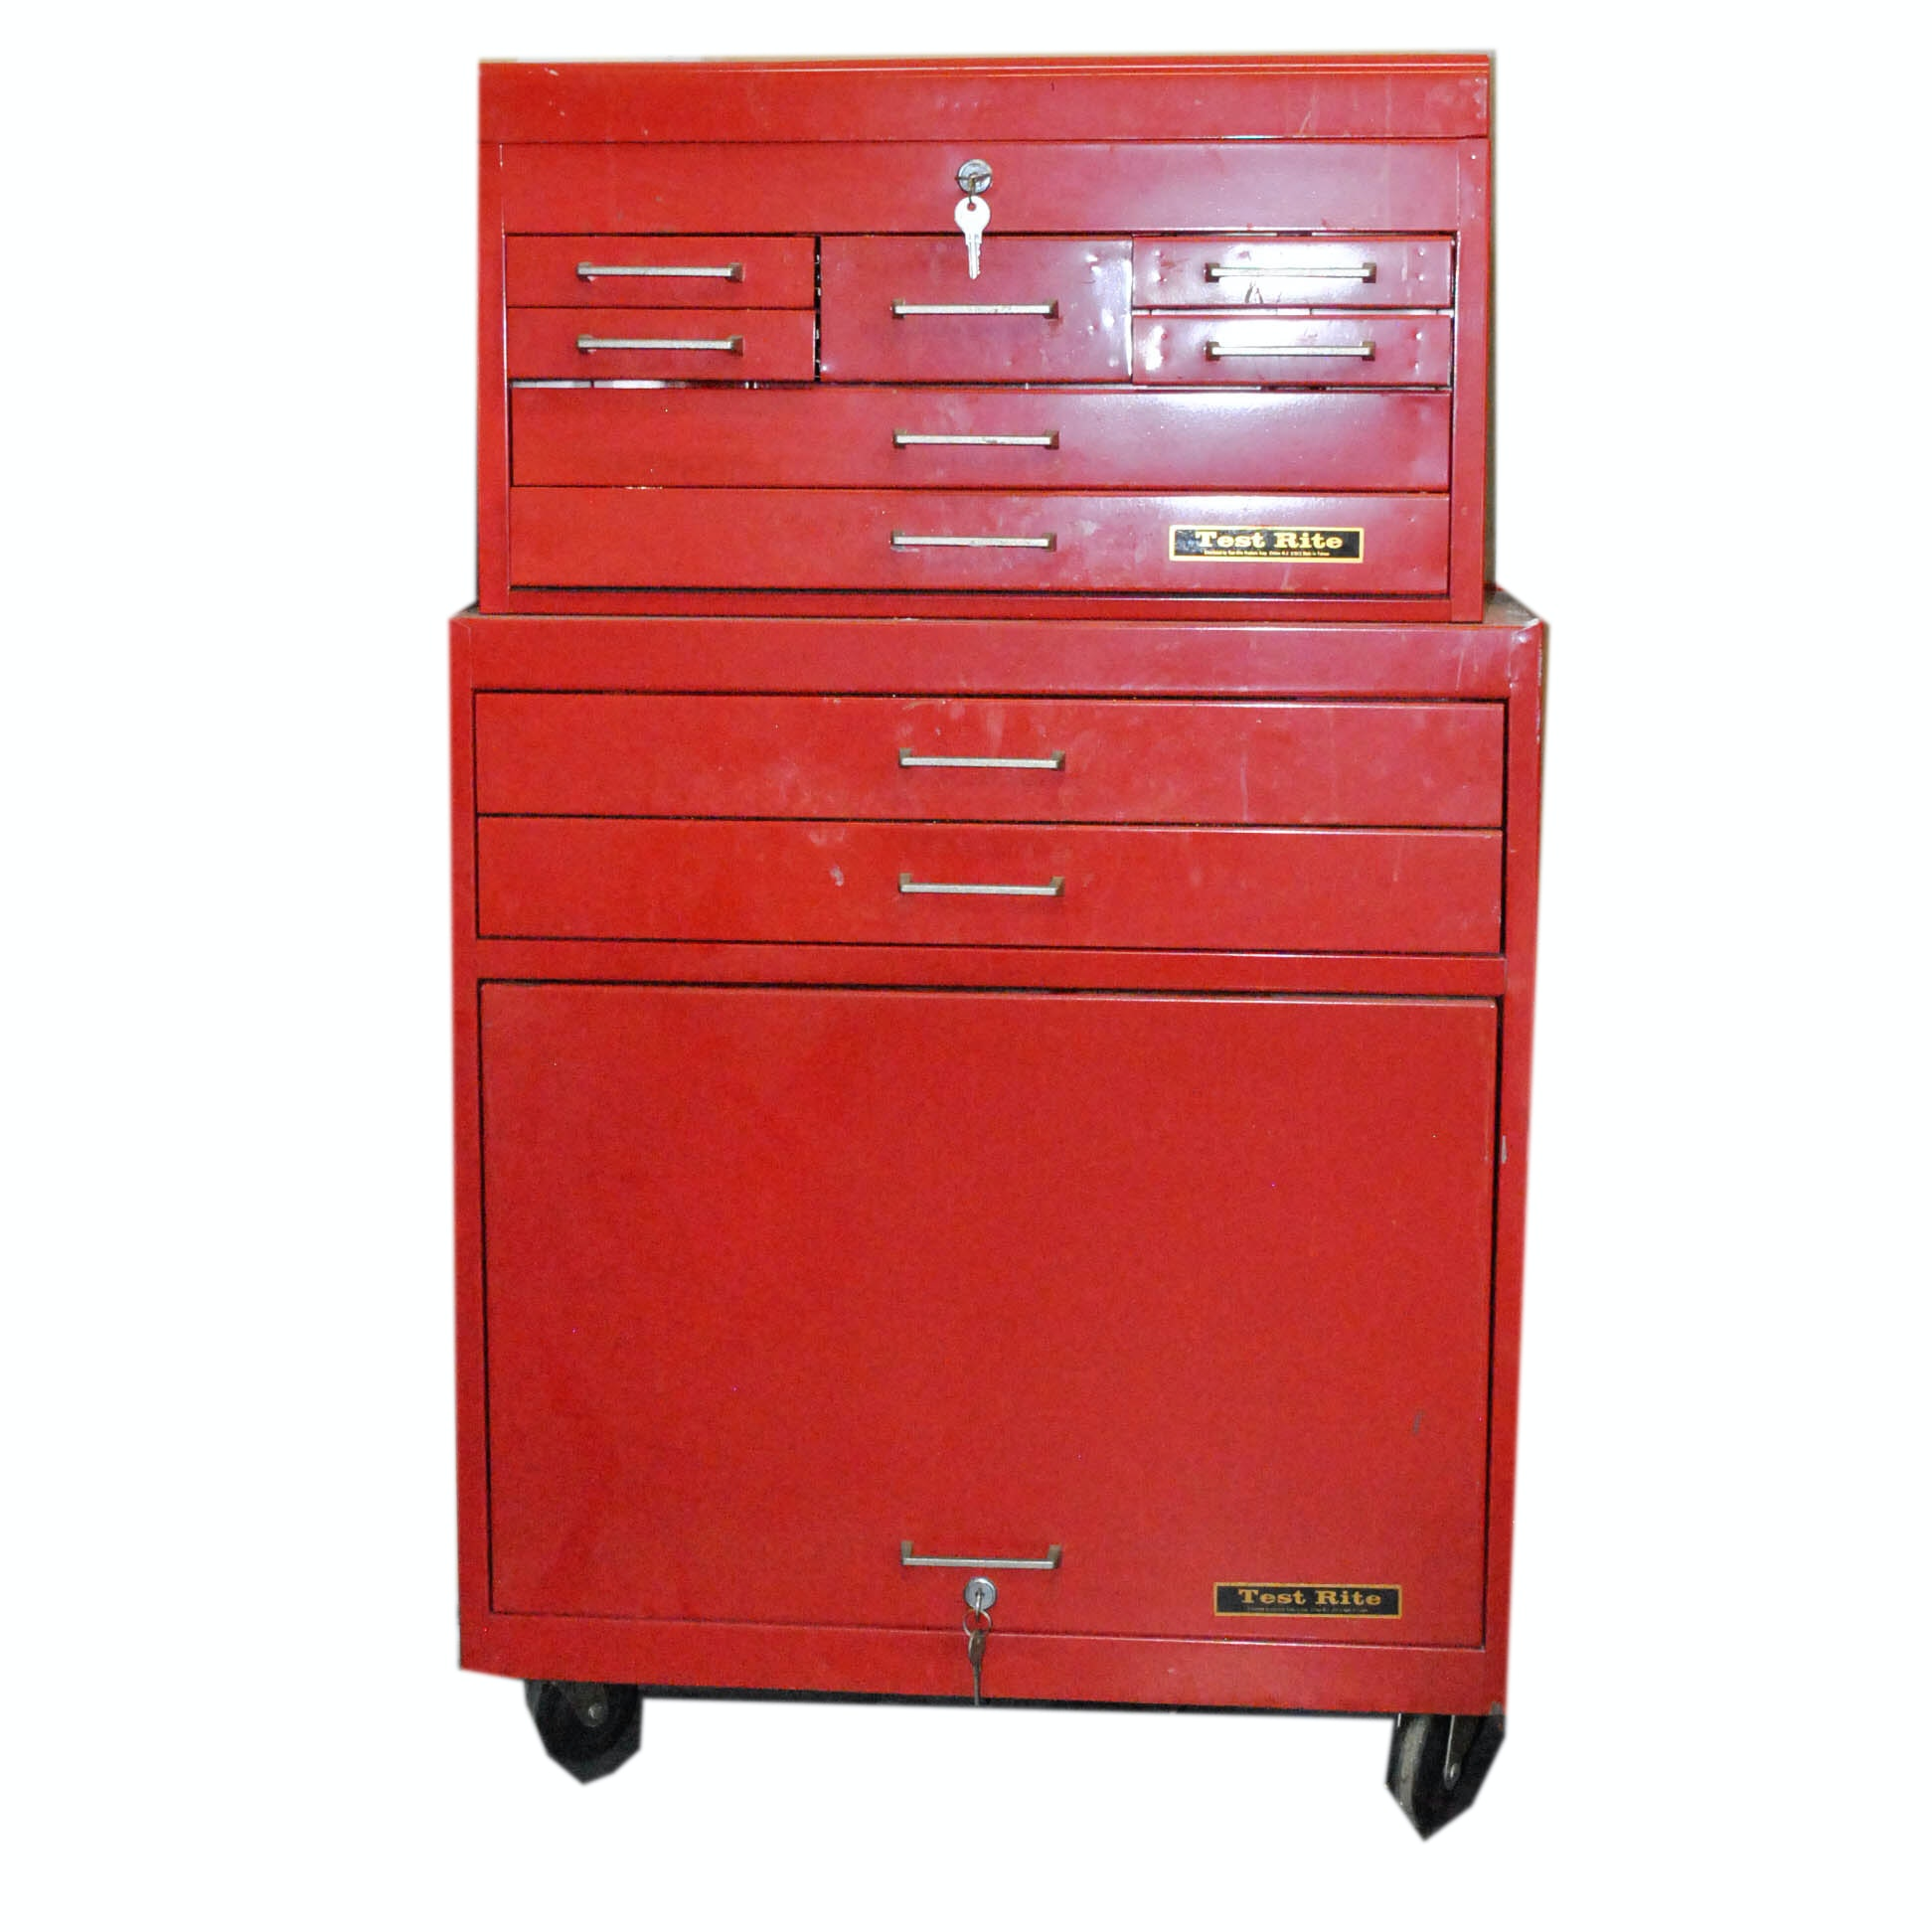 Vintage Red Metal Rolling Tool Chest by Test Rite